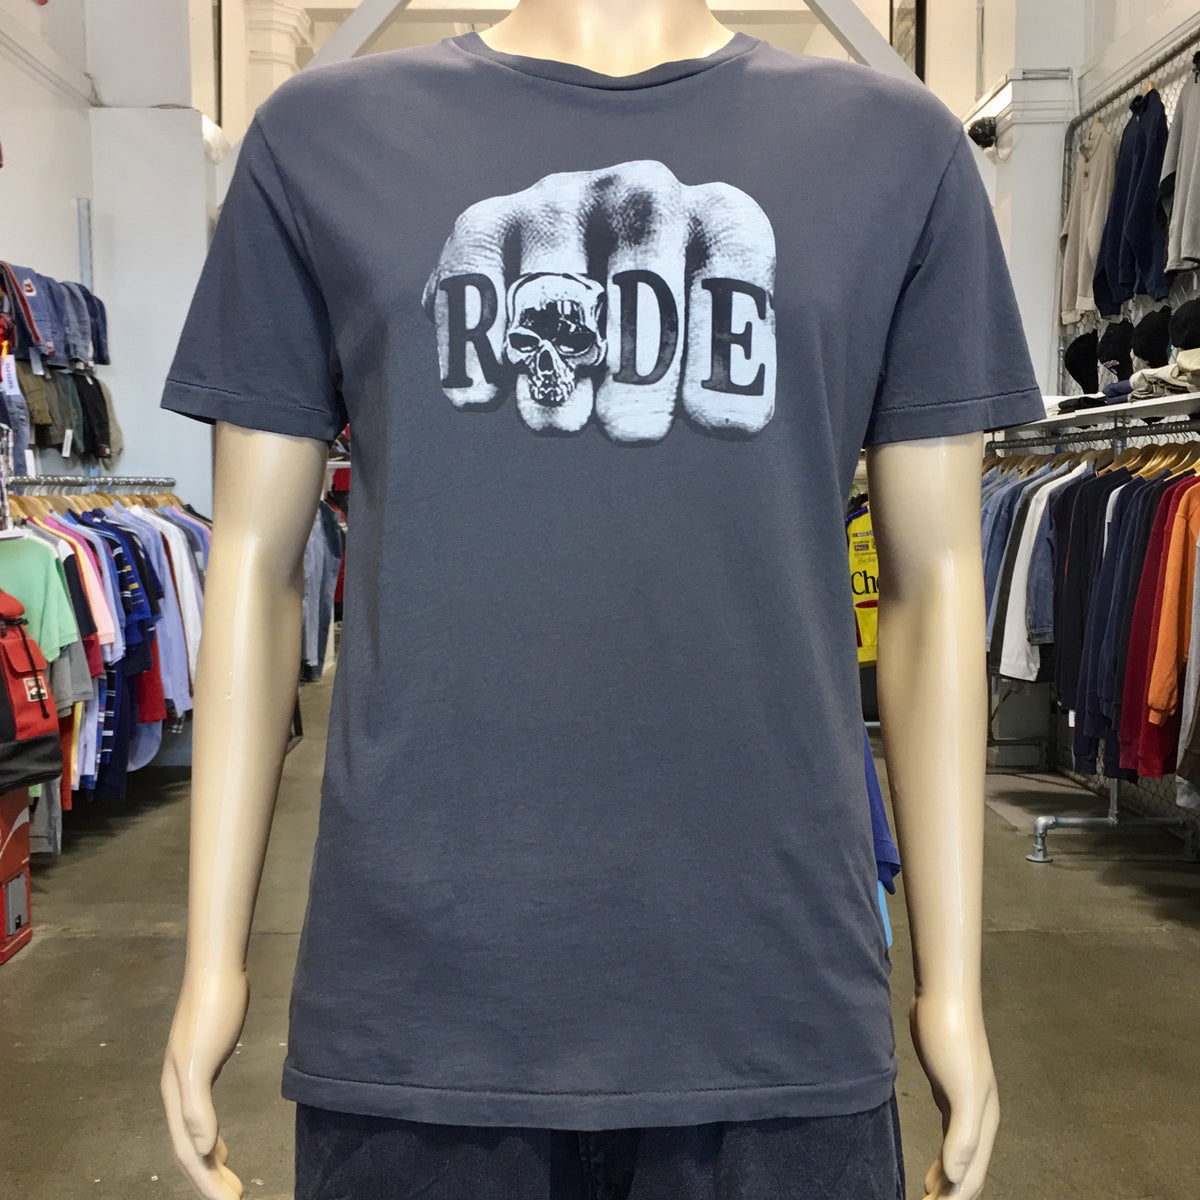 The Rude T-Shirt M